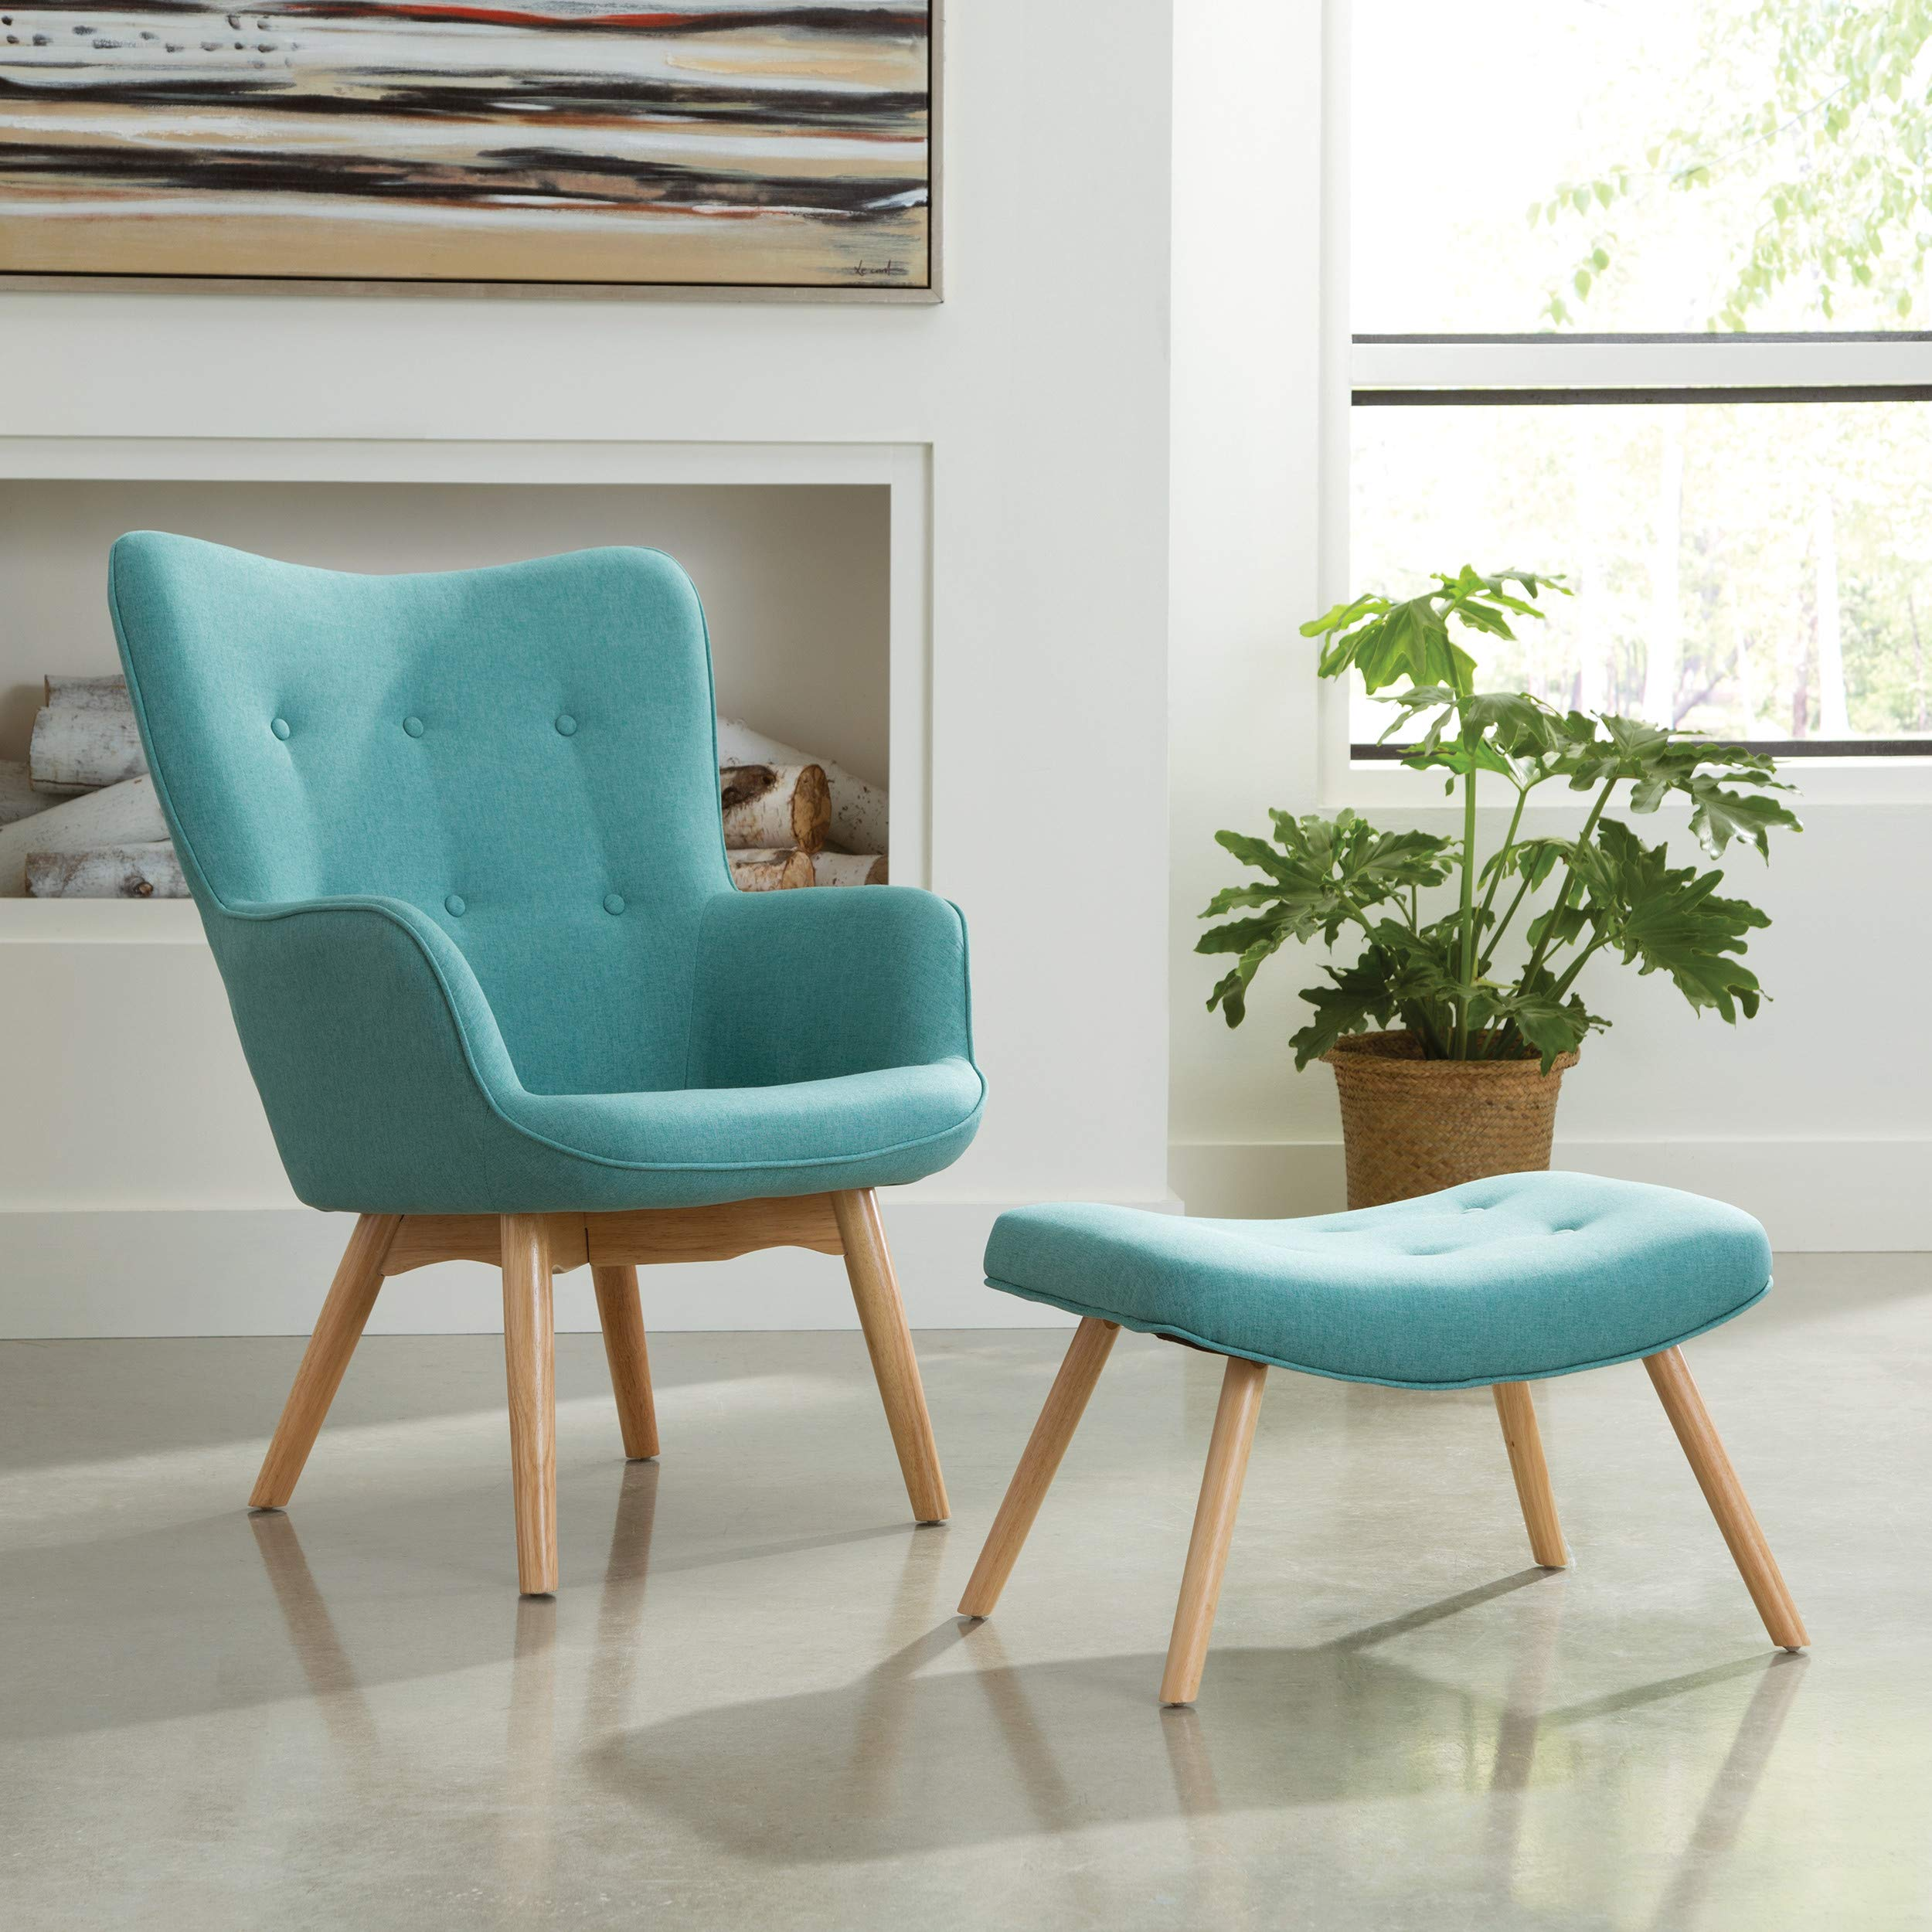 OFM 161 Collection Mid Century Modern Tufted Fabric Lounge Chair with Ottoman, Solid Honey Beechwood Legs, in Teal (161-FLC1-TEAL)